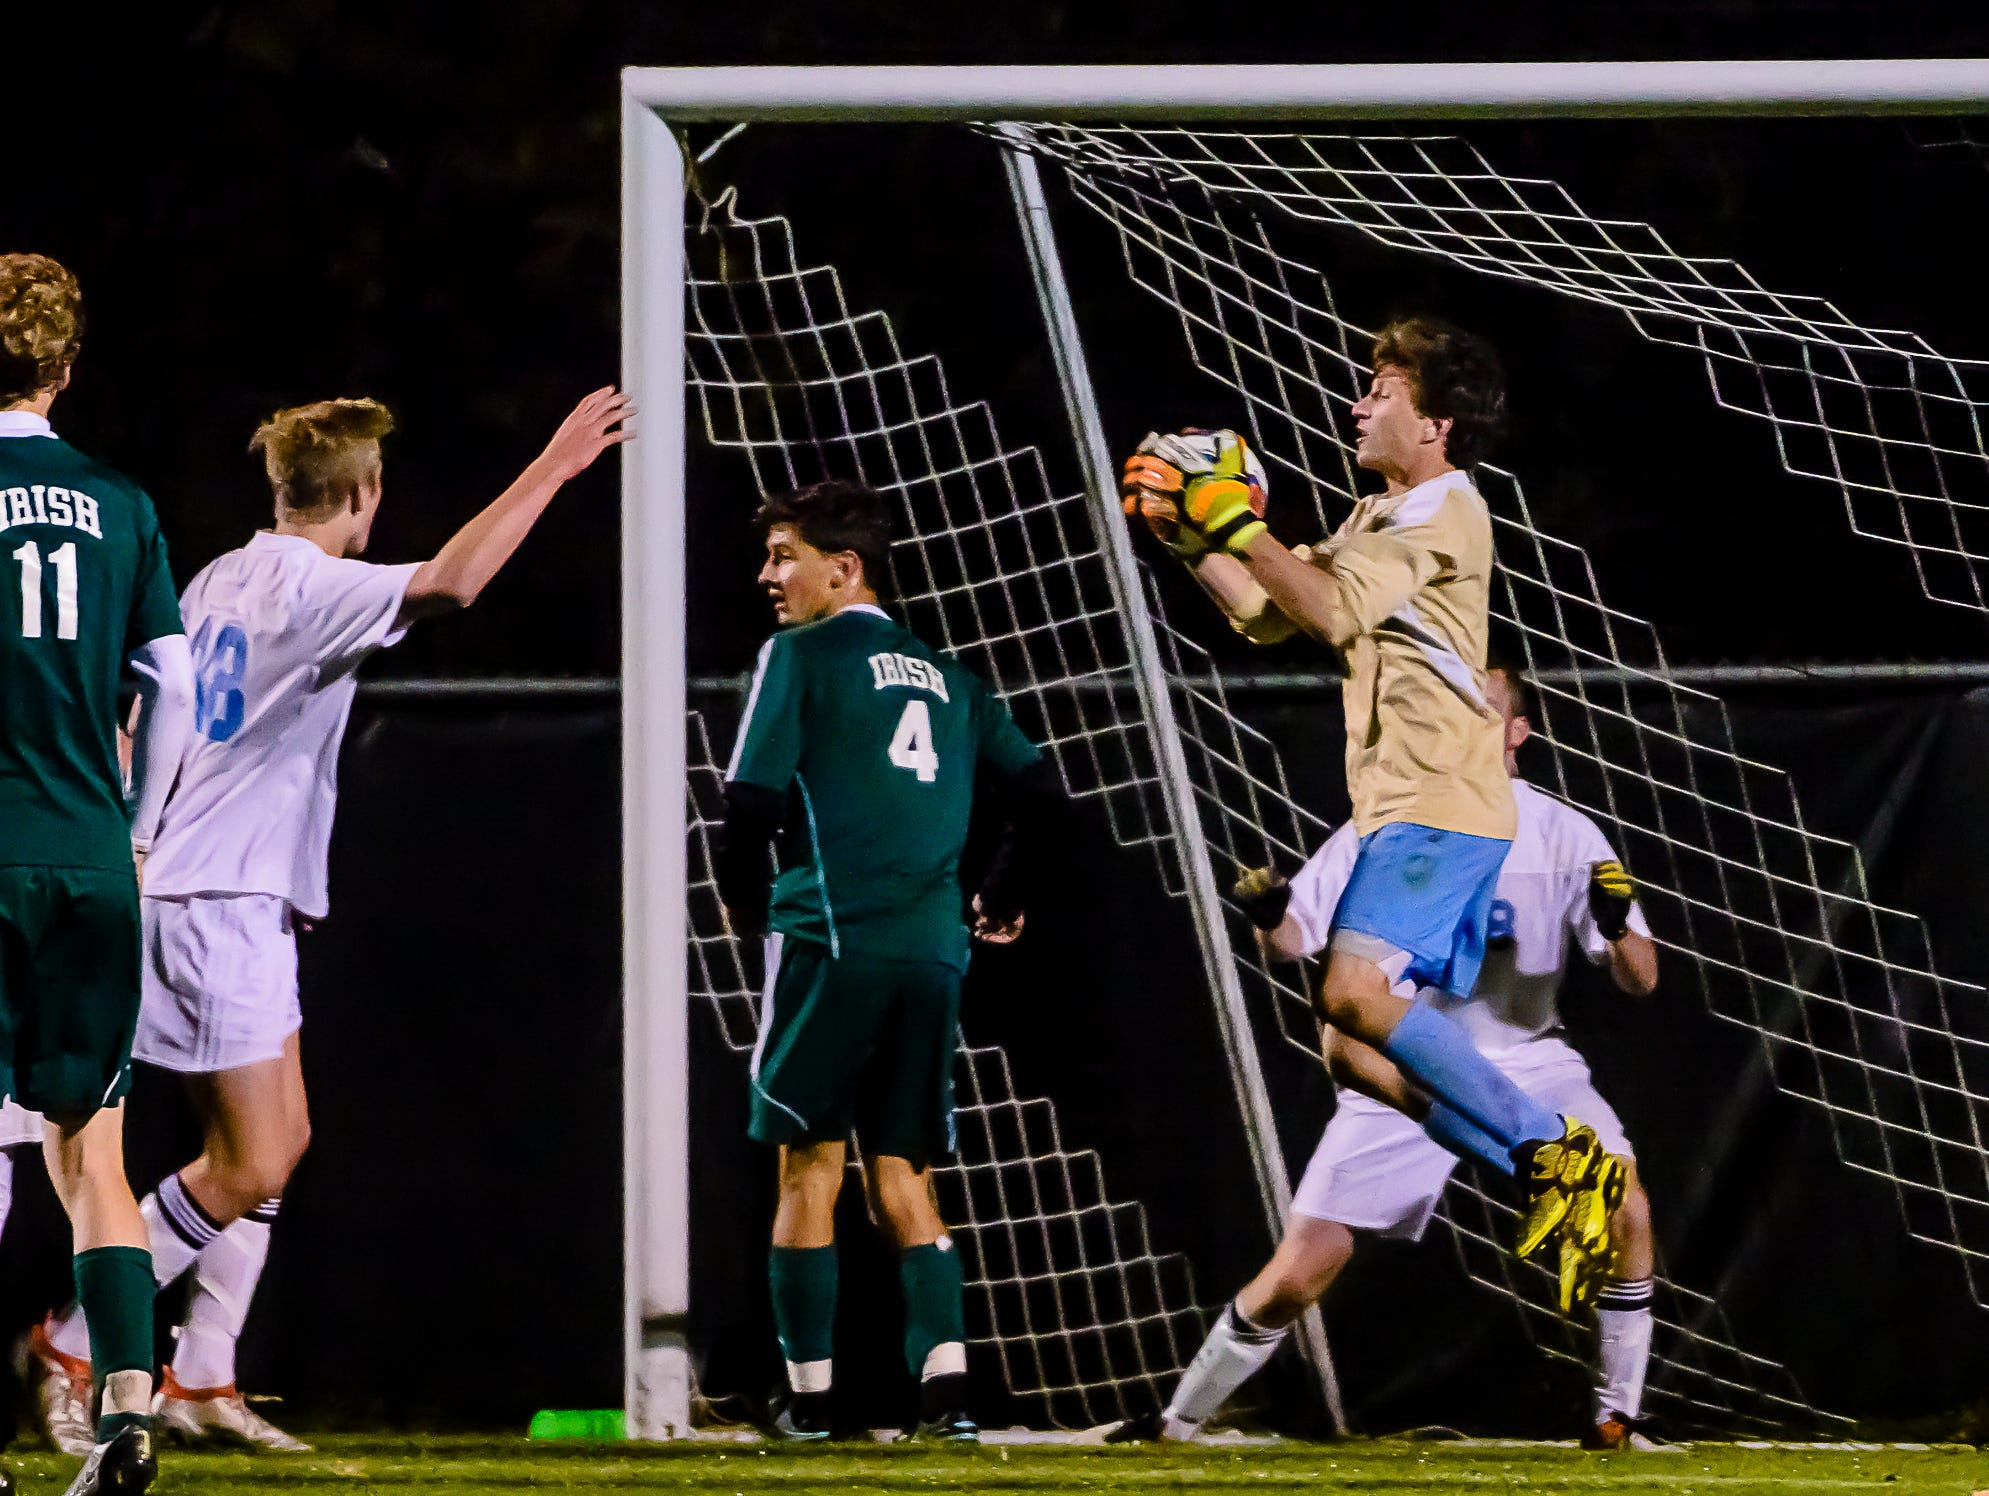 Lansing Catholic goalie Matthew Benivegna ,right, grabs the ball after a Gabriel Richard corner kick came close to scoring late in the 2nd half of their Division 3 regional quarterfinal game Tuesday October 25, 2016 in Williamston. KEVIN W. FOWLER PHOTO